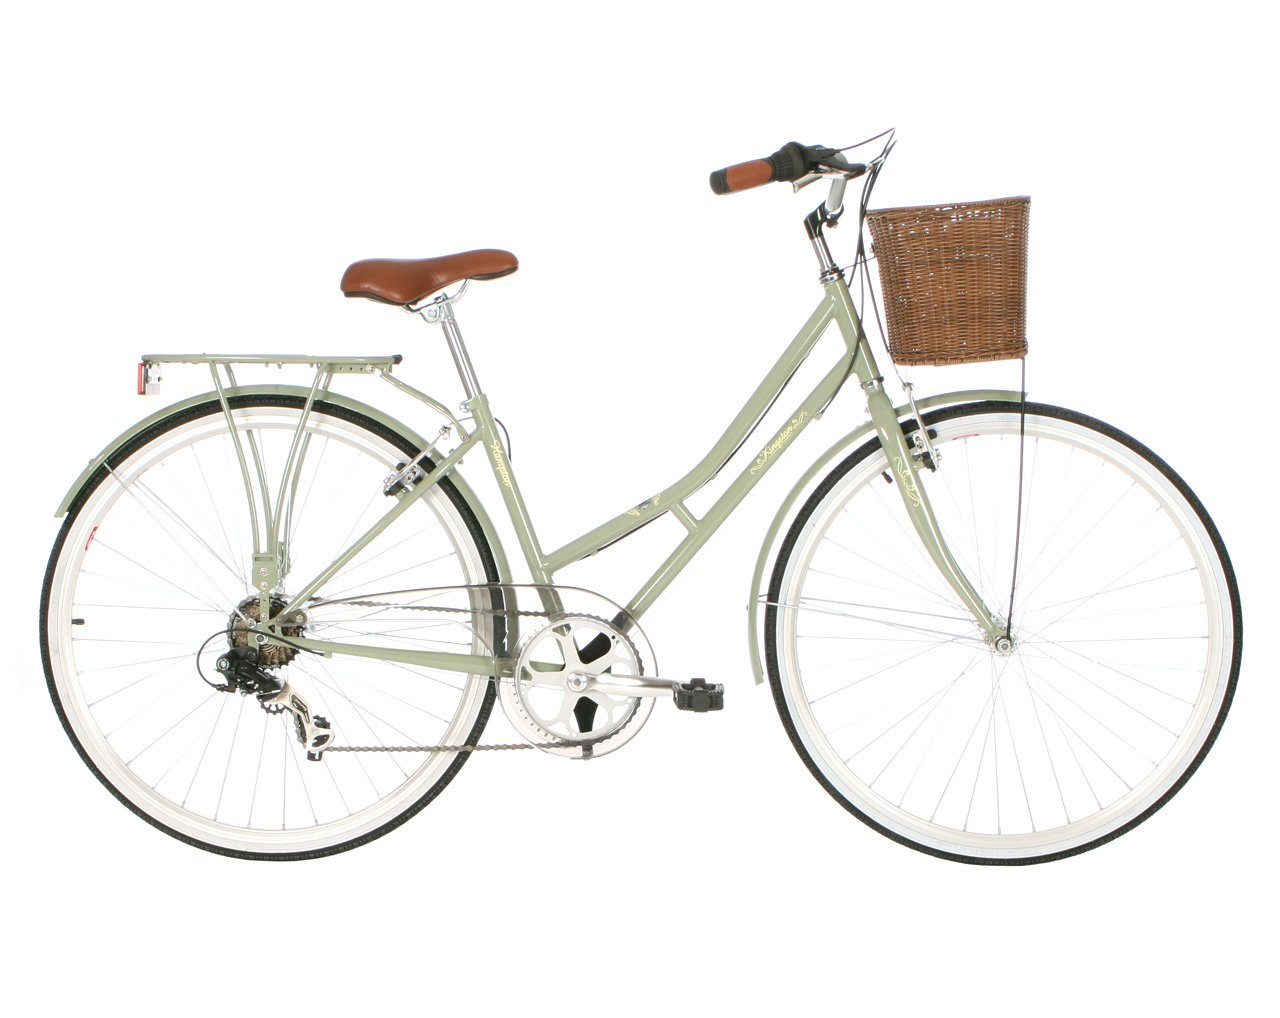 Best Hybrid Bikes For Women This best hybrid bike has a